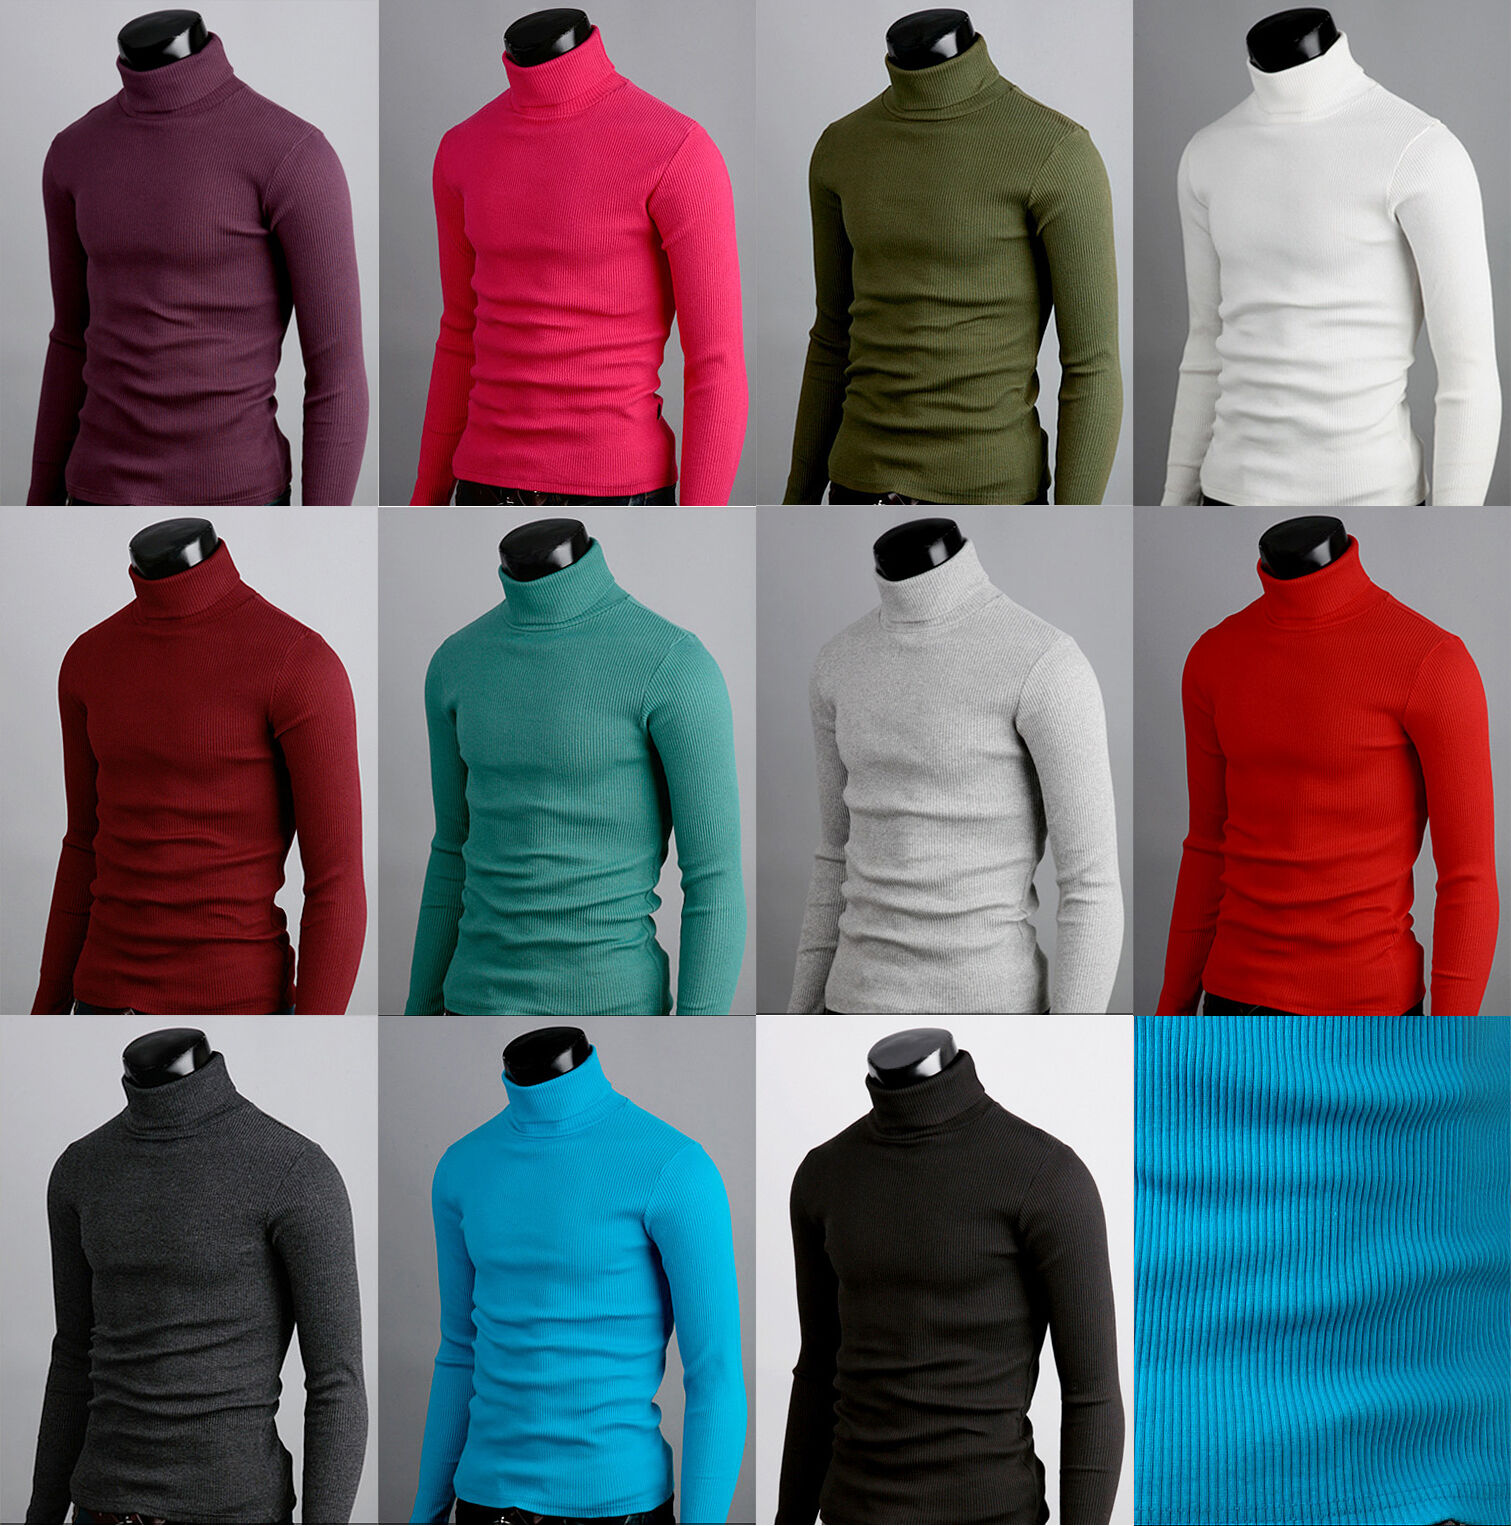 Korean fashion Mens Turtleneck sweatershirts stretch Cotton polo neck jumper